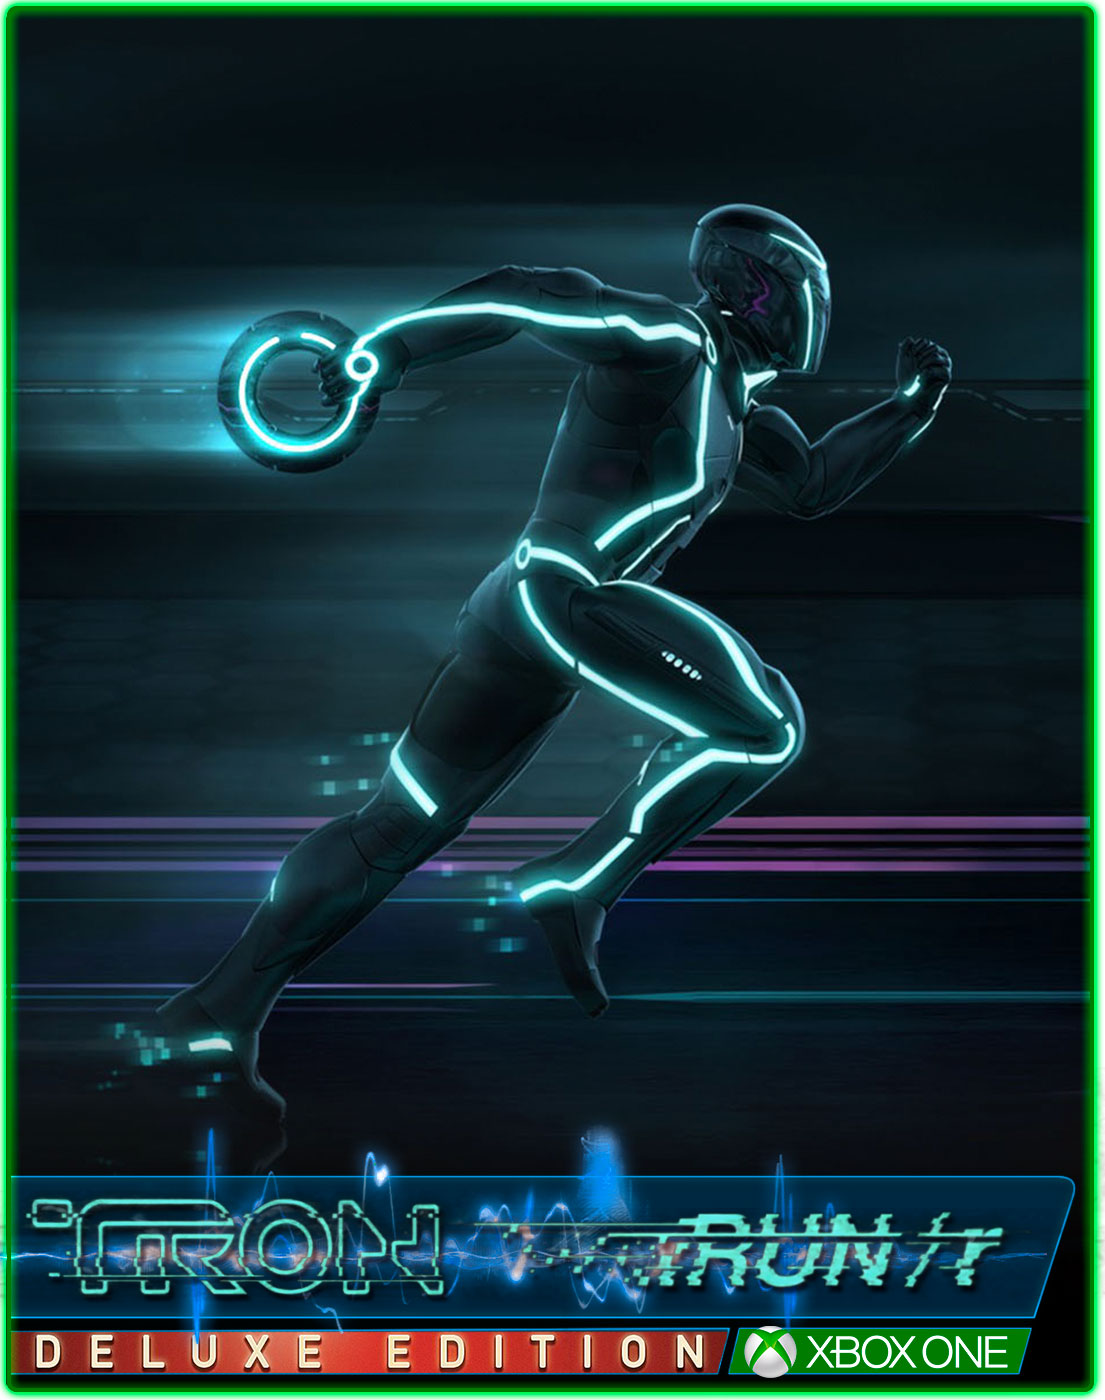 TRON RUN/r Deluxe Edition(XBOX ONE) 2019